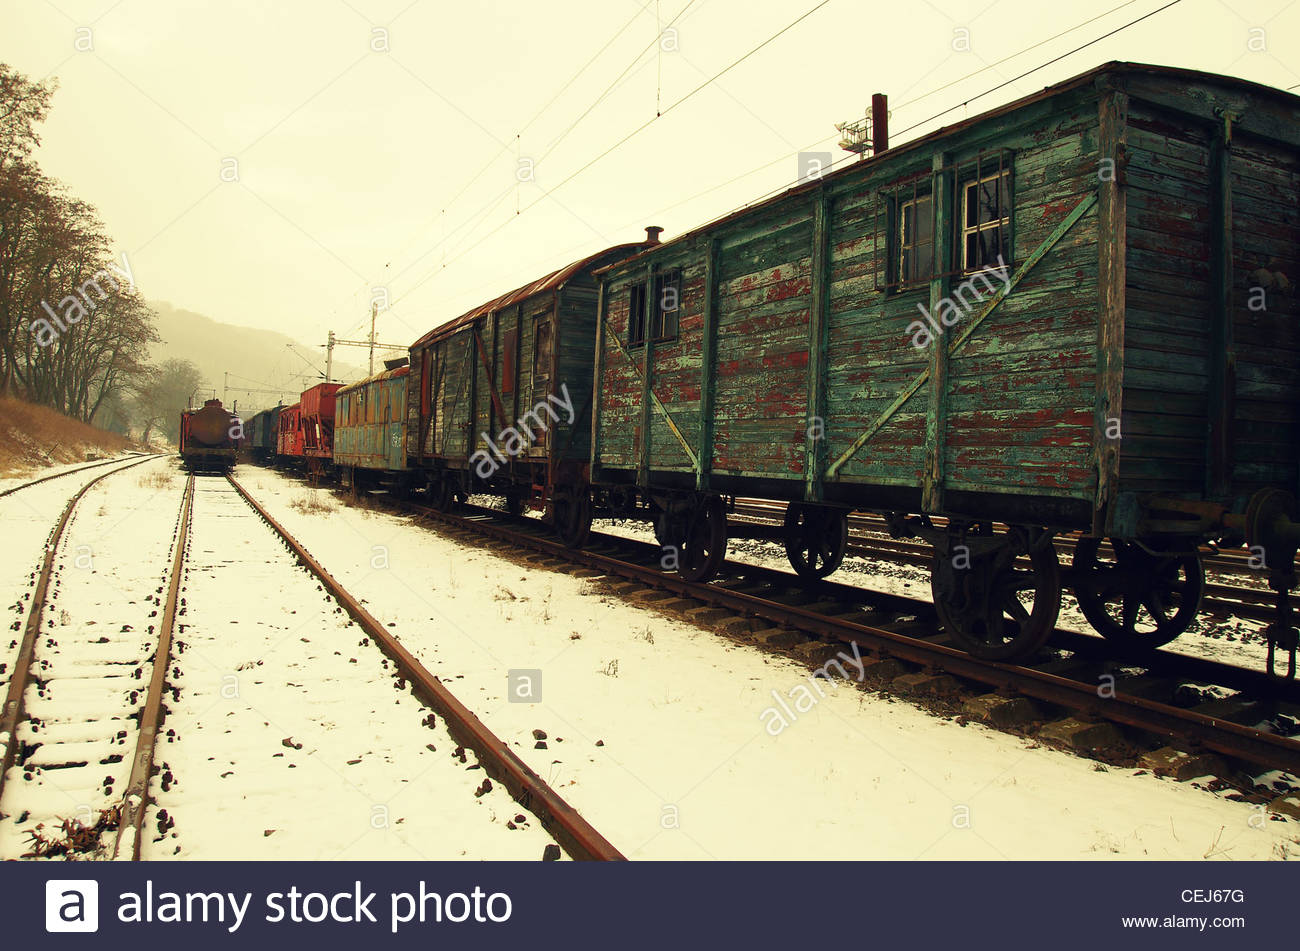 Vintage Wooden Train - Stock Image